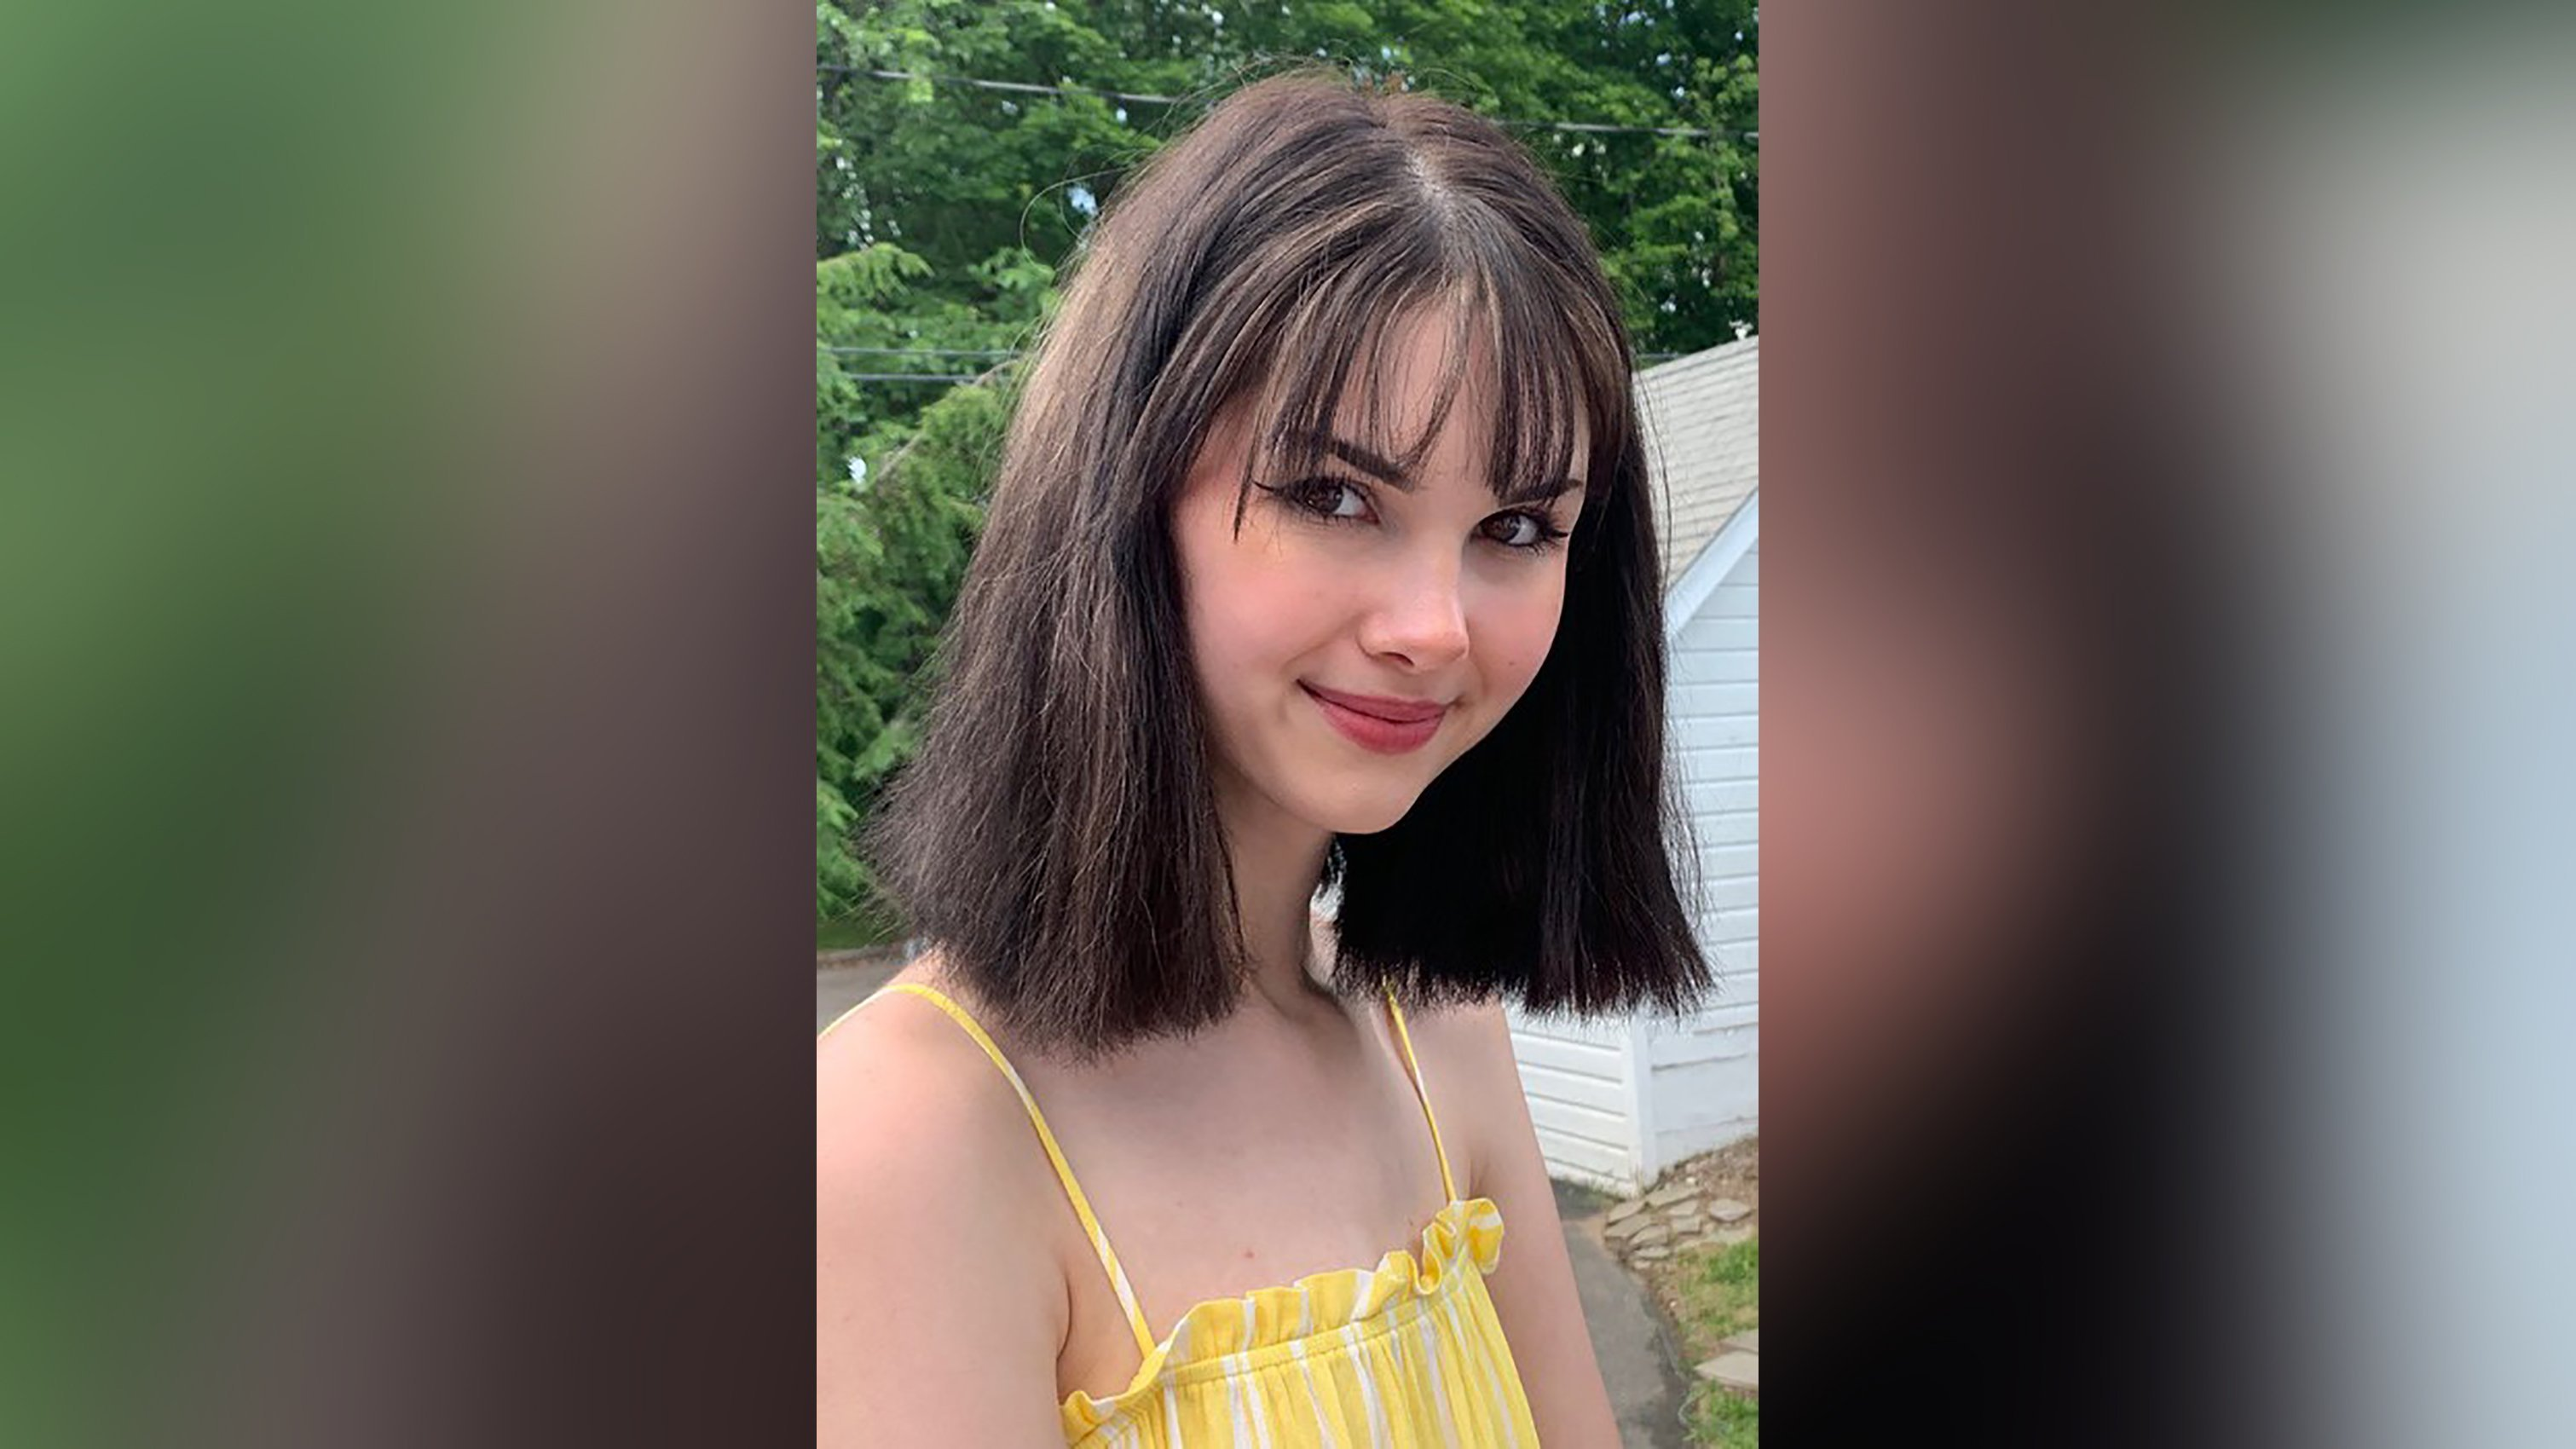 The man accused of killing teen internet personality Bianca Devins is charged with murder